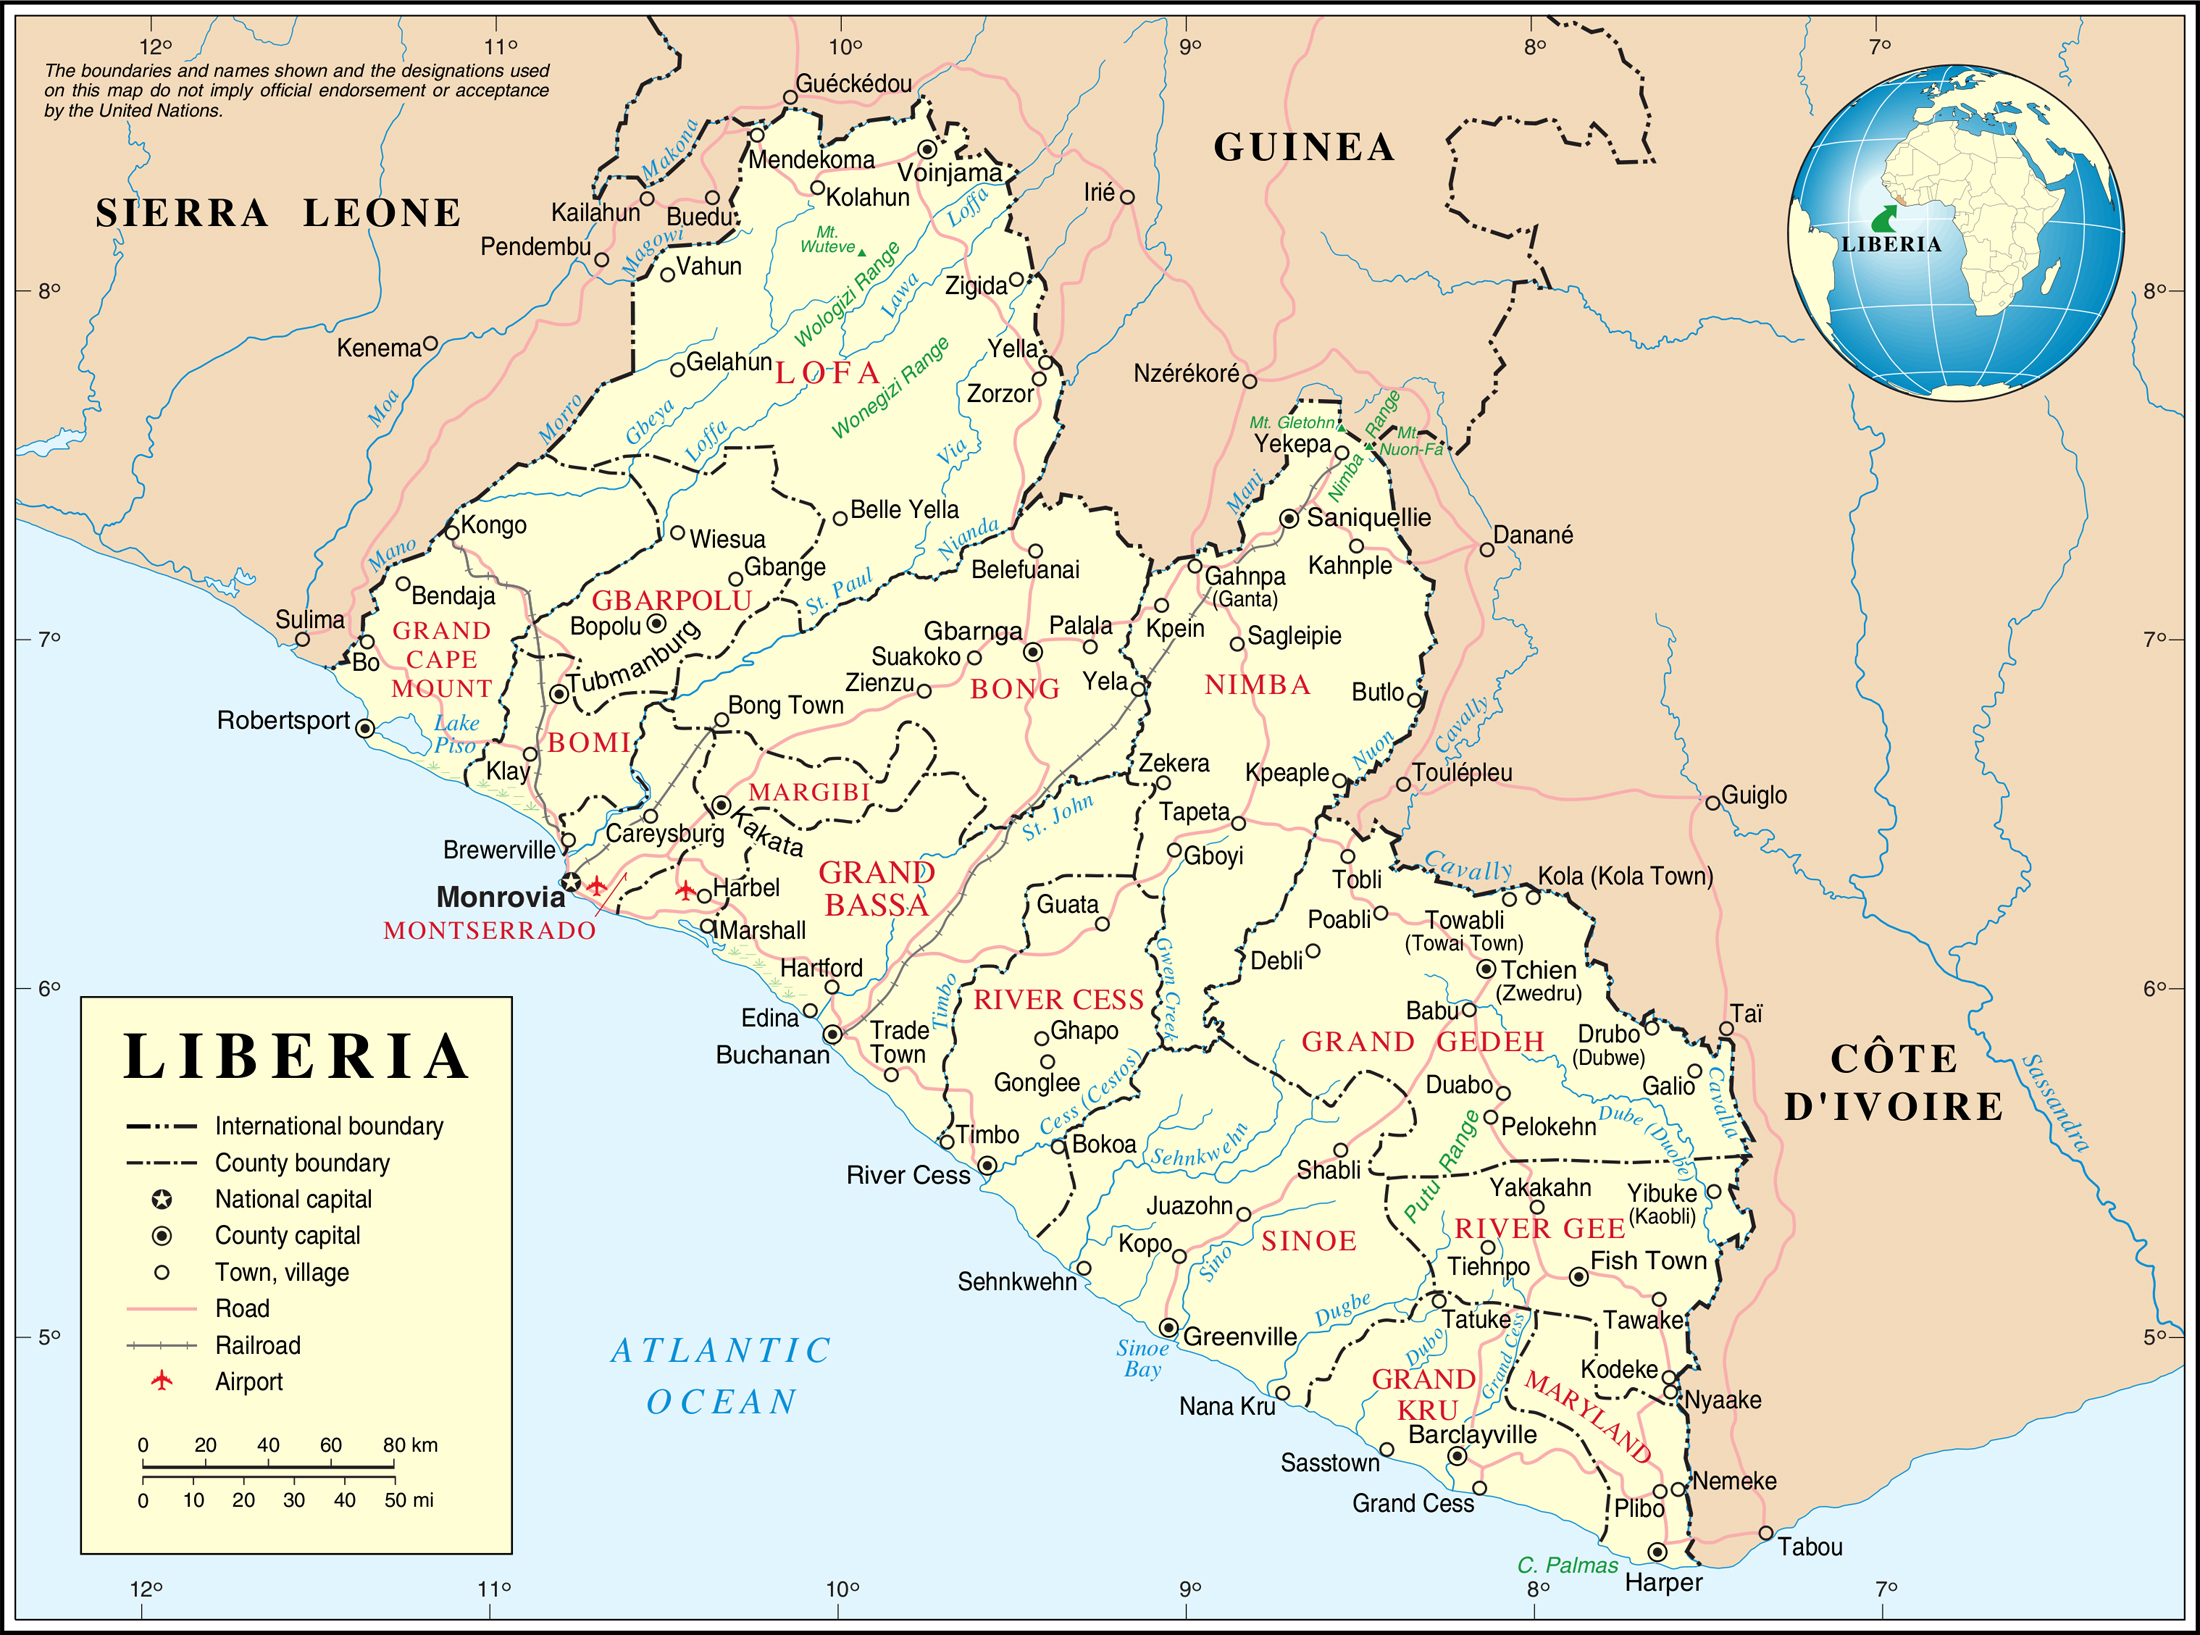 Detailed political and administrative map of Liberia with all cities